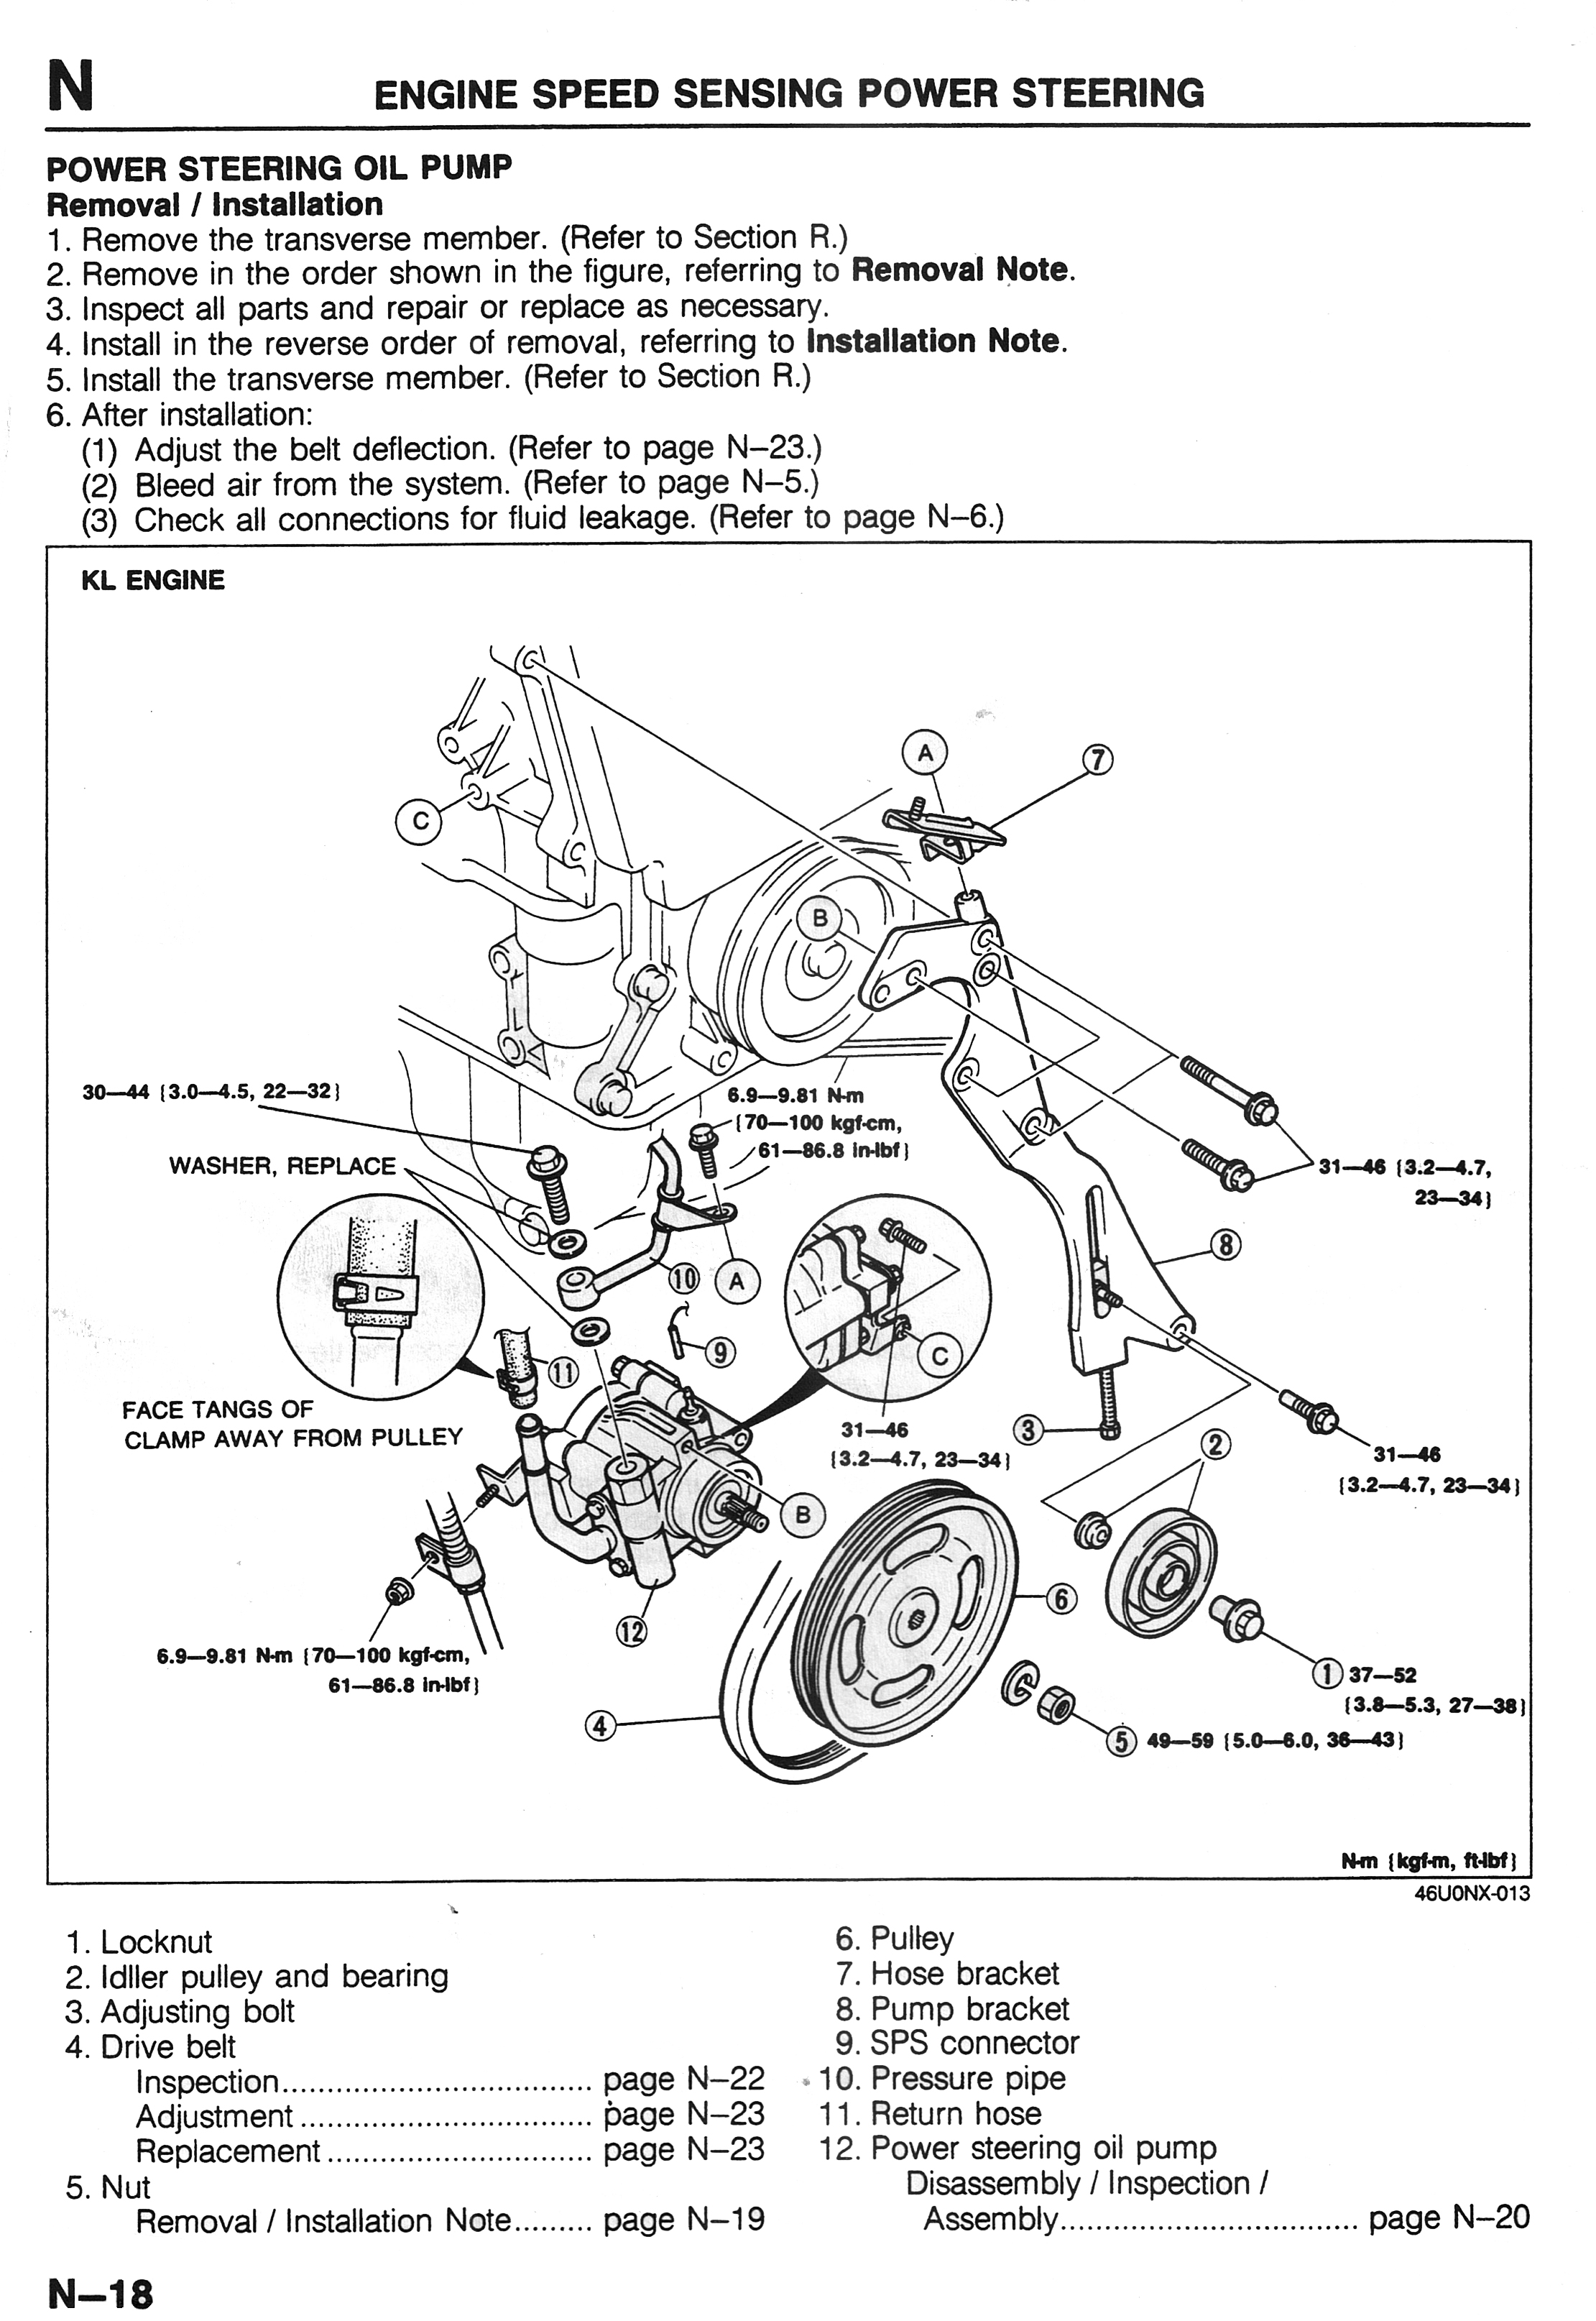 power steering pump repair info